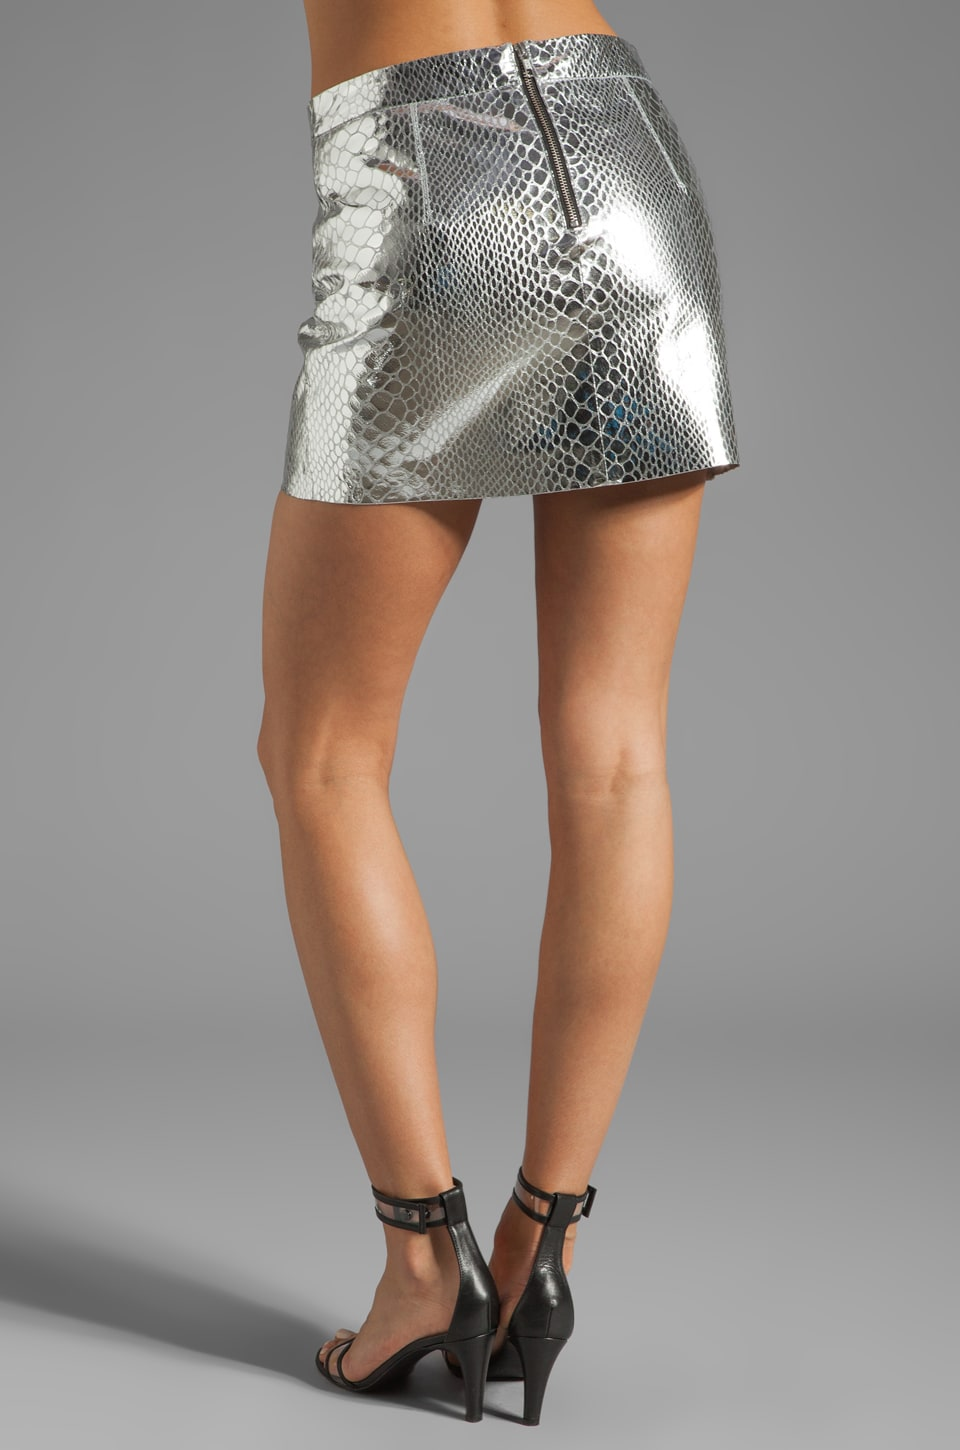 MILLY Mirrored Python Mini Skirt in Silver   REVOLVE